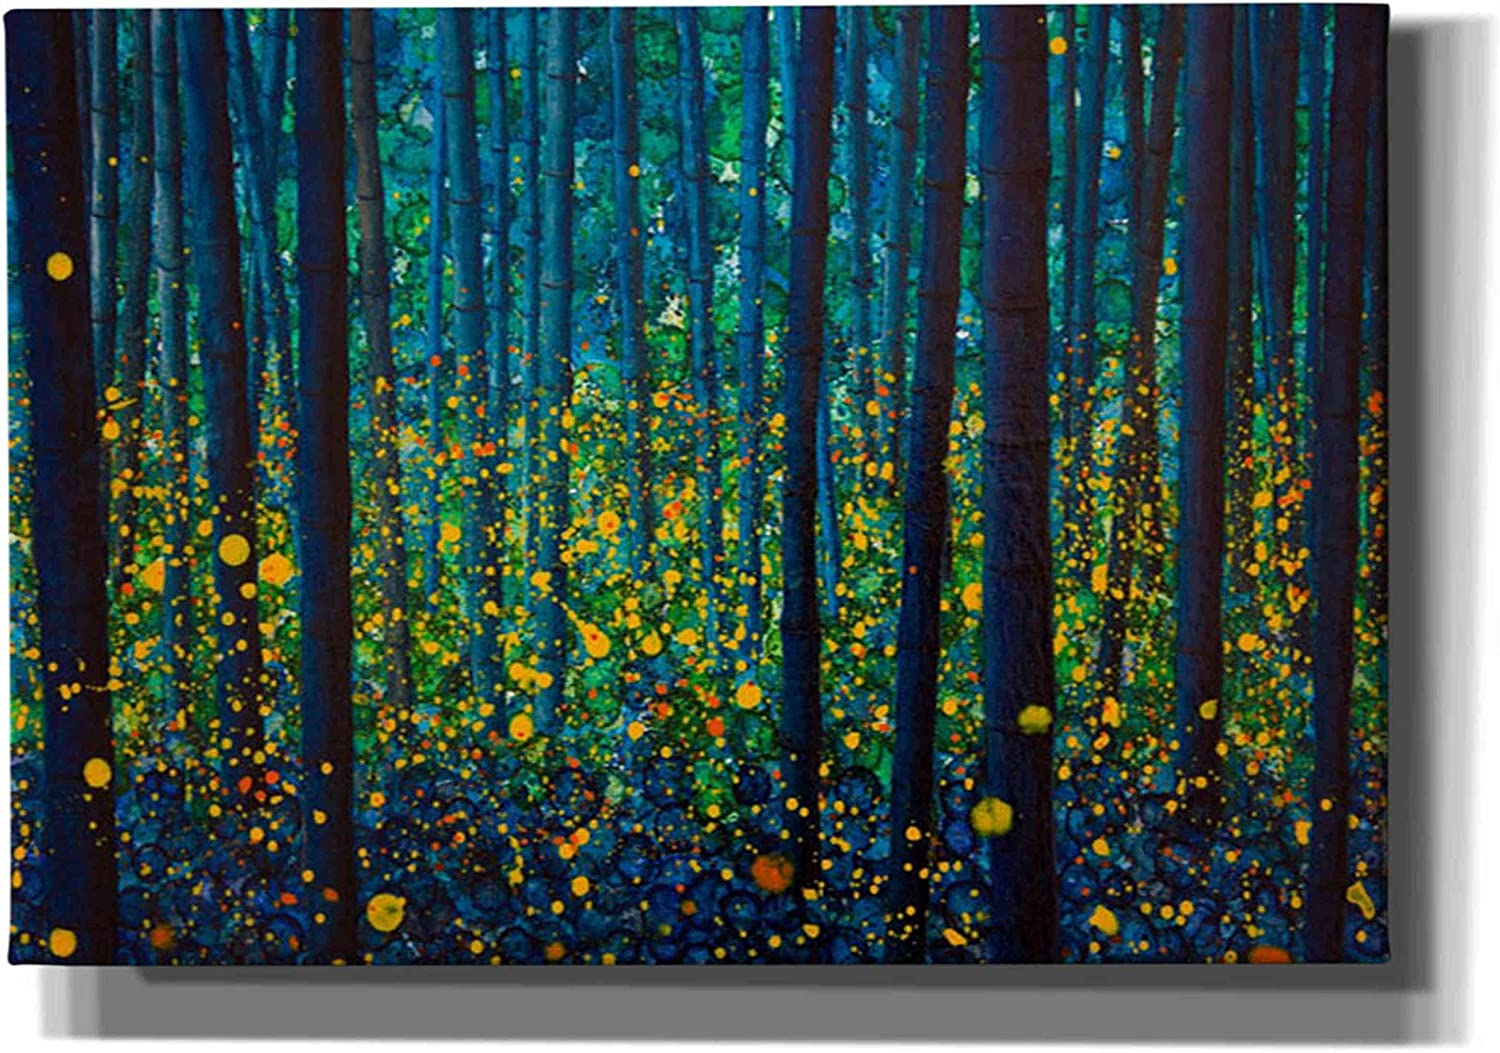 Epic Graffiti 'Fireflies' by DB Save Be super welcome money Wall Waterman Giclee Art Canvas